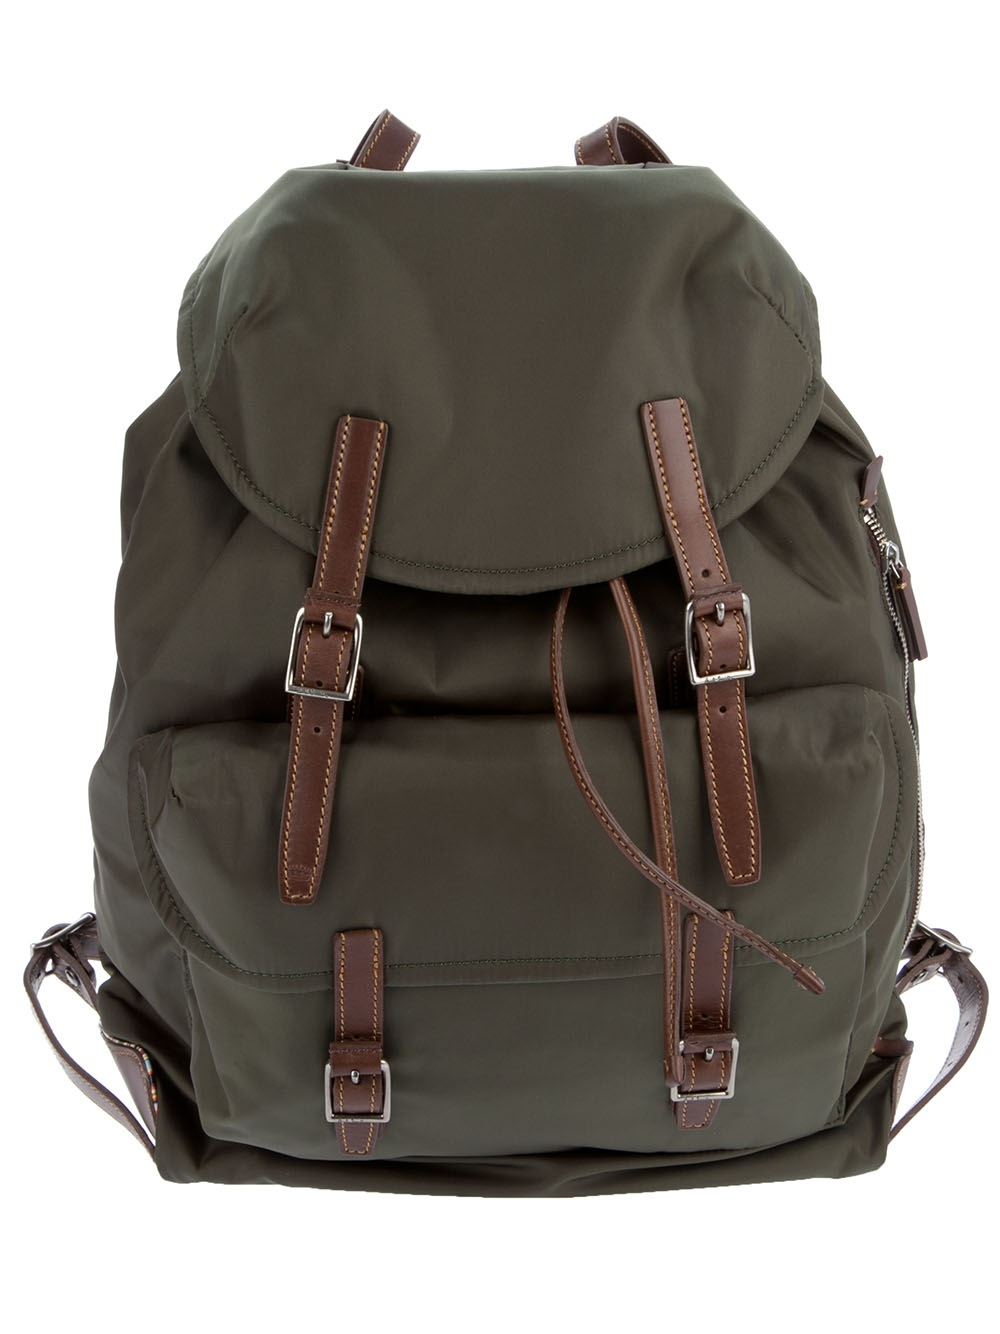 Paul Smith Rucksack in Green for Men - Lyst d6eec17ac